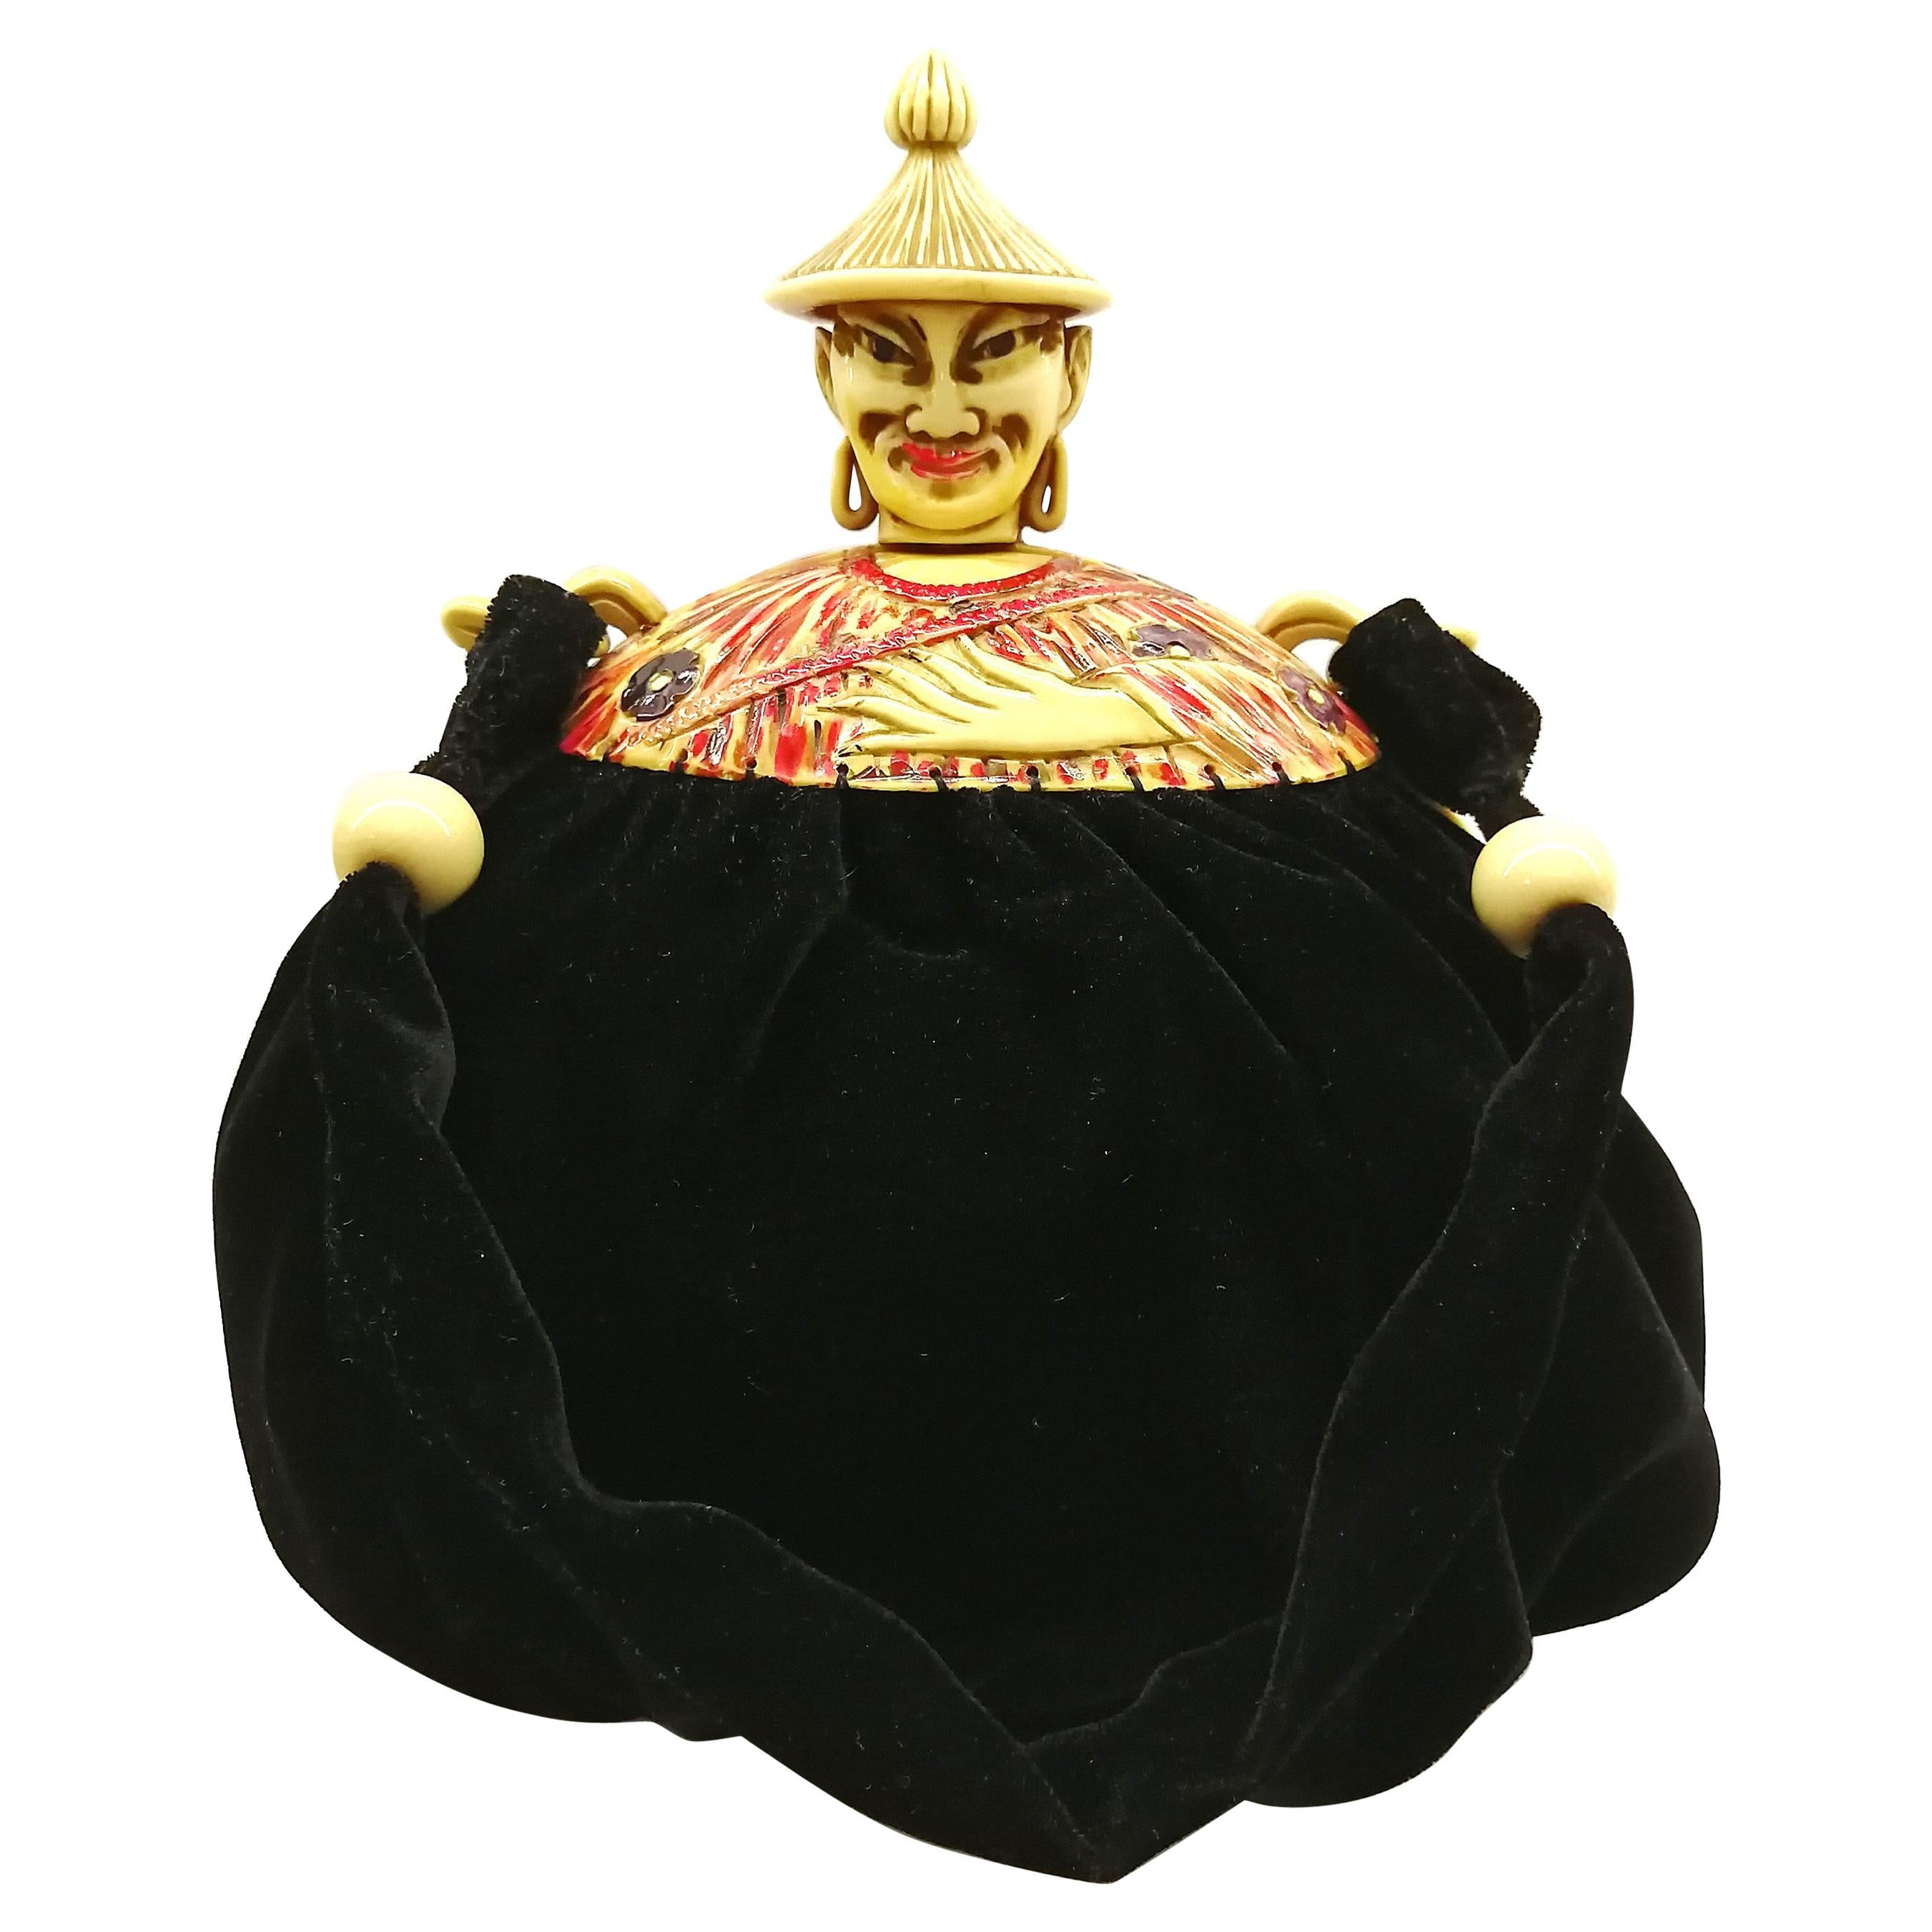 A rare and highly unusual Bakelite topped 'Chinese man' handbag, France, 1920s